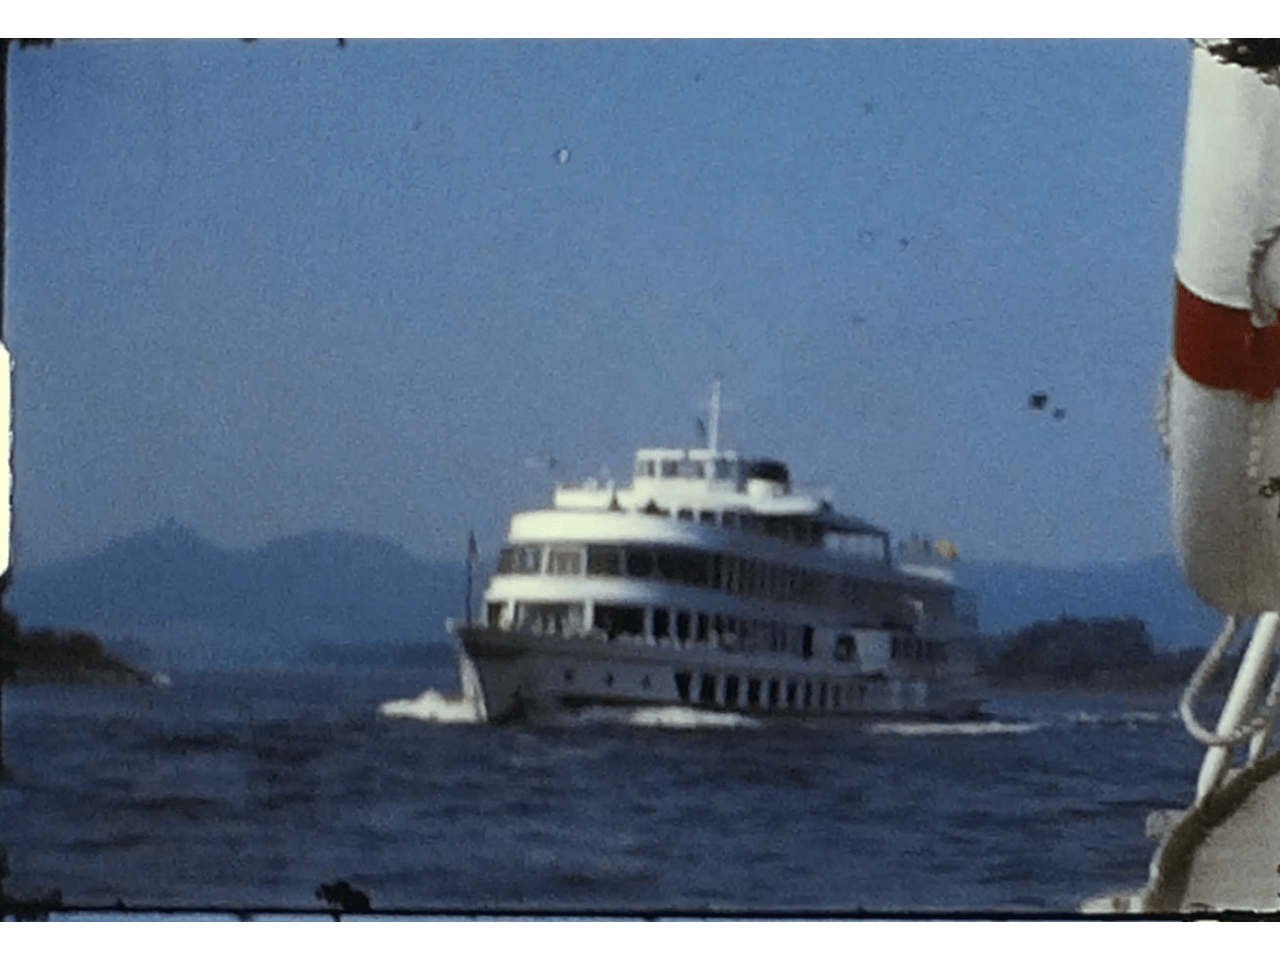 A Coach trip to the Rhine in the 1970s